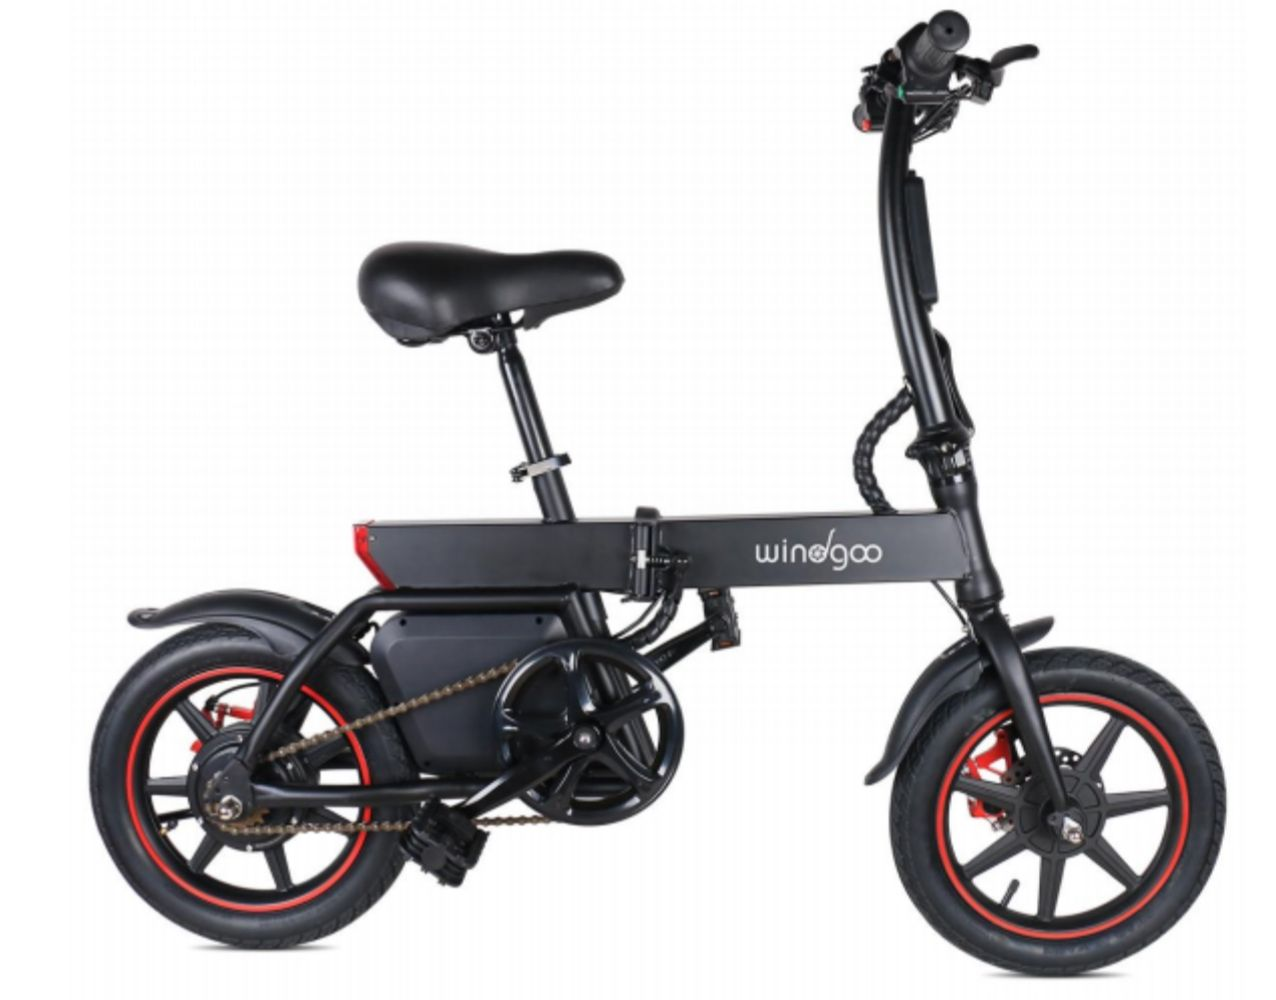 ZERO VAT. Electric Folding Bikes, Electric Scooters and Electric Hoverboards - Great Margins to be made. Delivery available on all lots